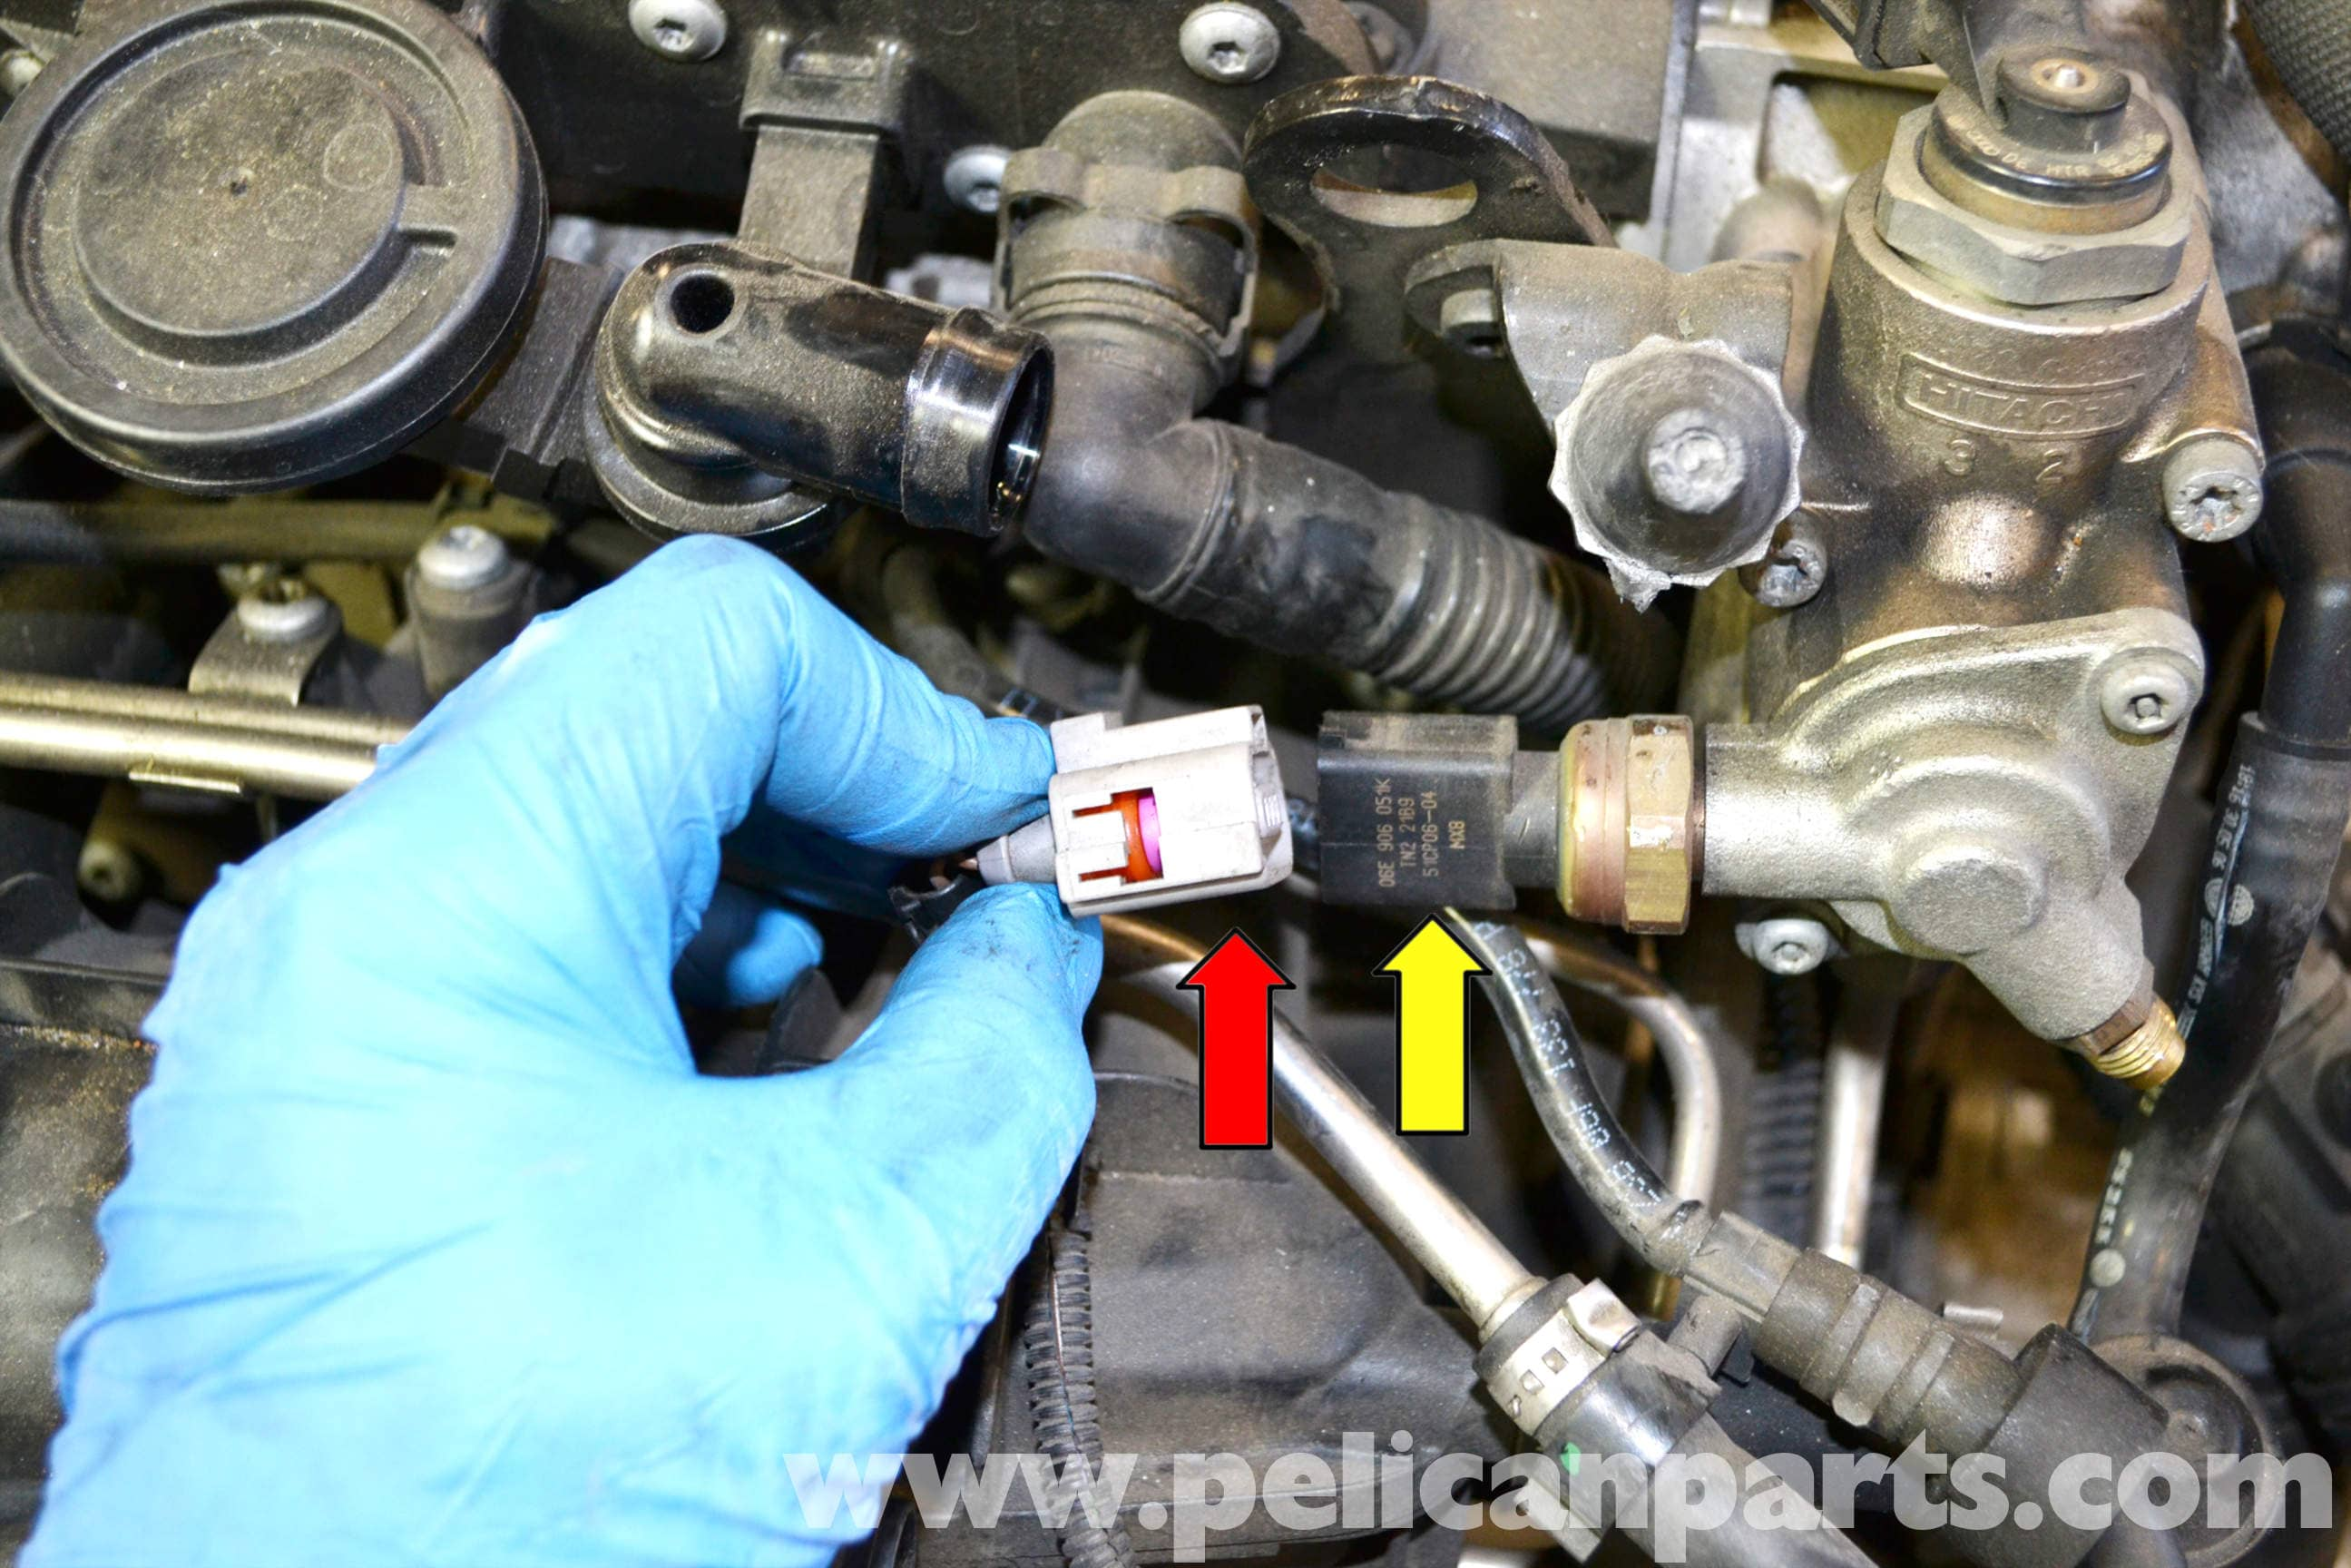 How To Remove Clean Or Bypass An Egr Valve From A Trafic Vivaro Primastar Diesel Van likewise Replace further 2004 Chevrolet Trailblazer Identifying together with Parts For 1 43 Scale Cars besides 3023. on tiguan electrical problems